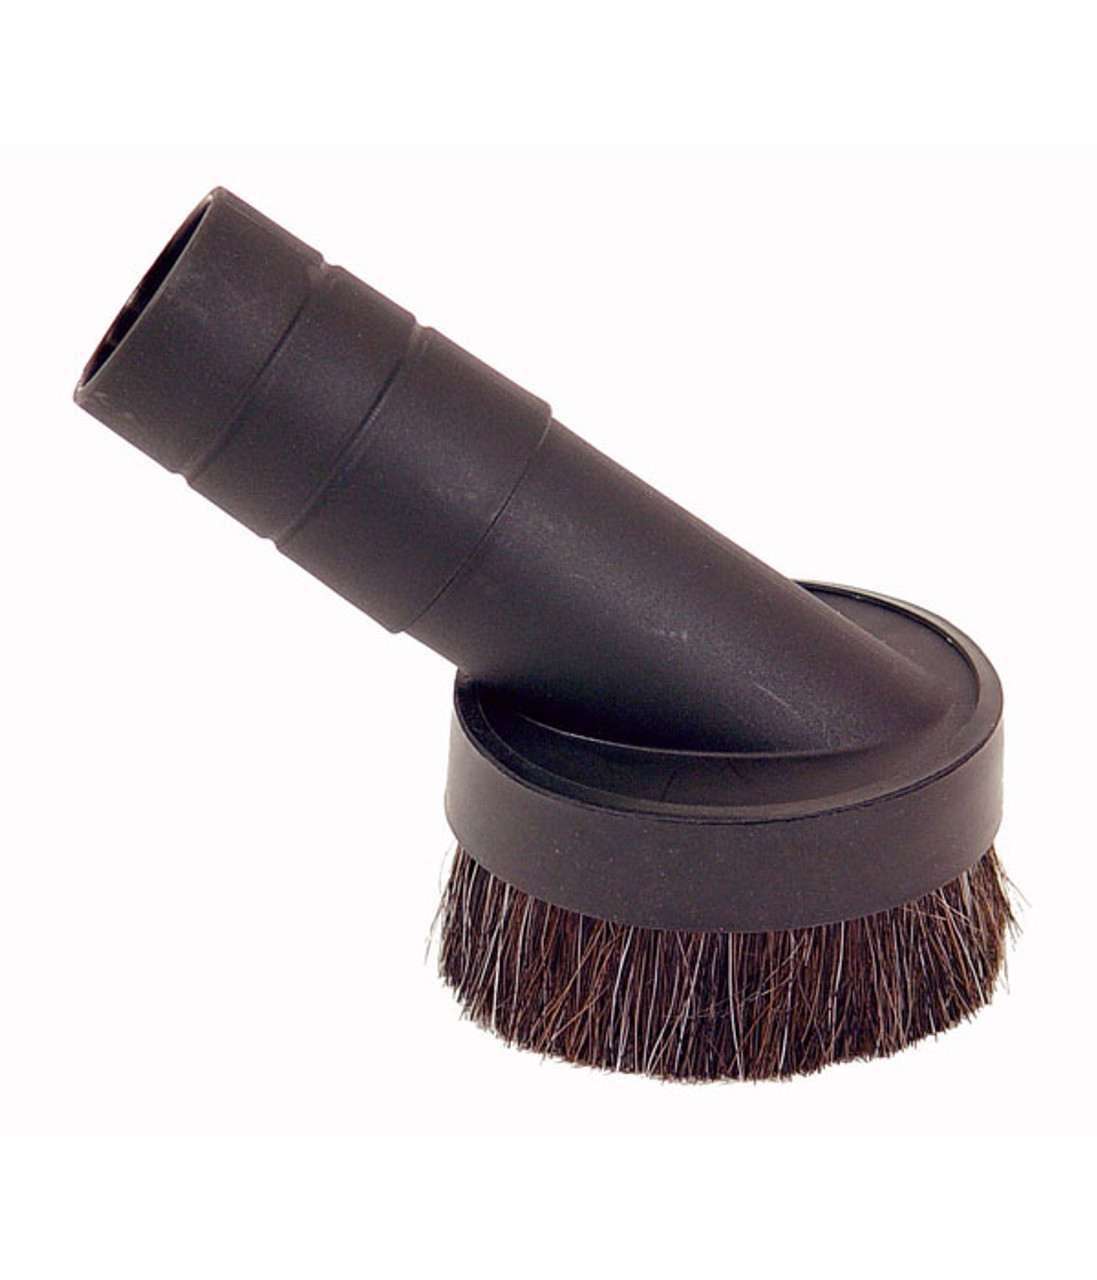 "ProTeam 100110 3"" Dust Brush with Reducer"